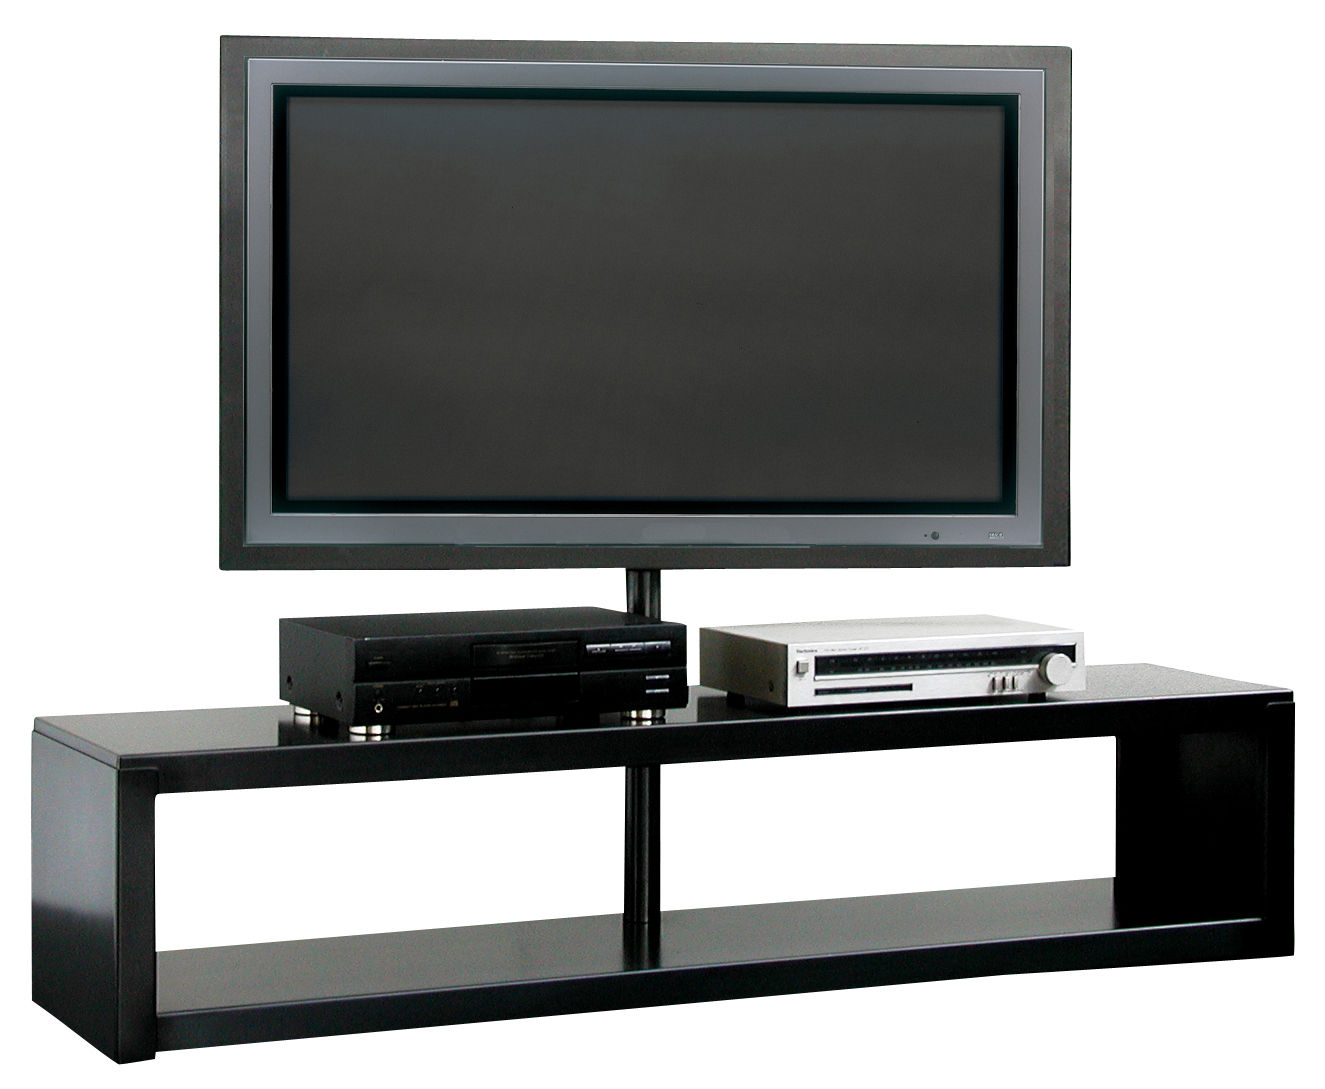 Tv Table Big Irony Plasma Television Table Console Flat Screen